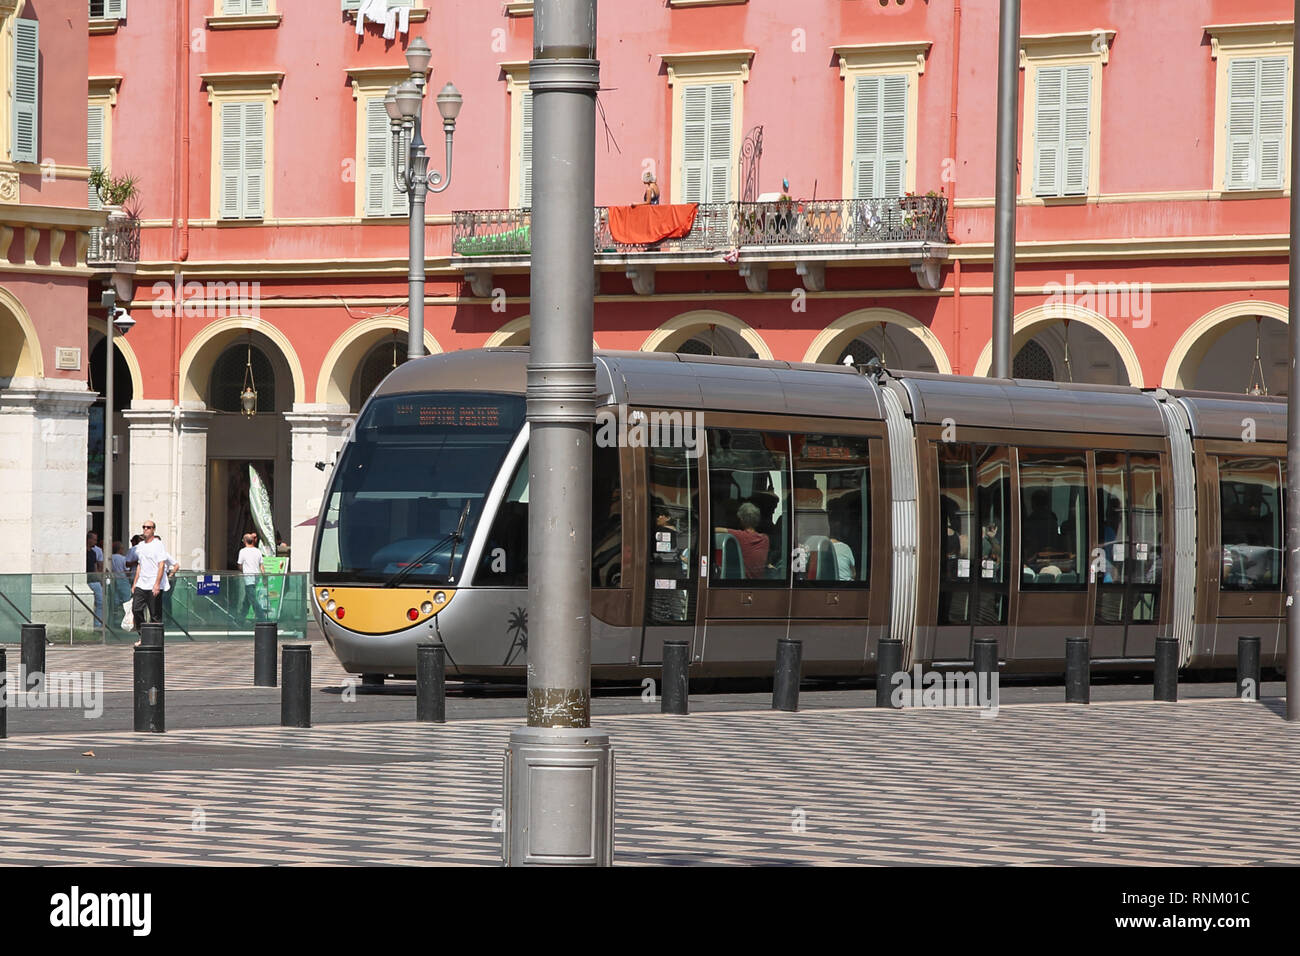 Tram at Place Massena, Nice, South of France - Stock Image